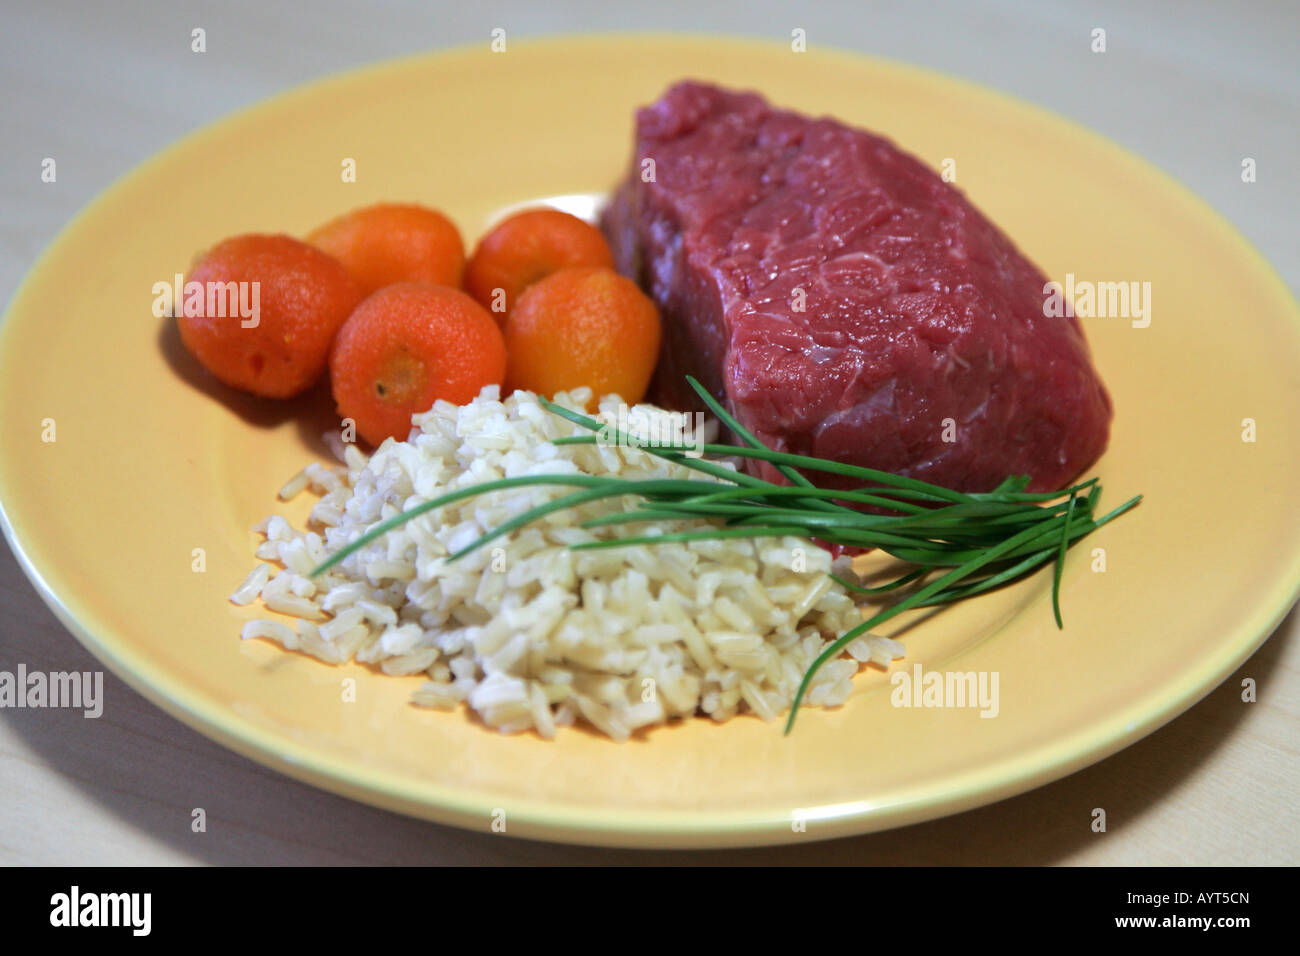 Raw meat with uncooked vegetables and rice, ready for preparation Stock Photo